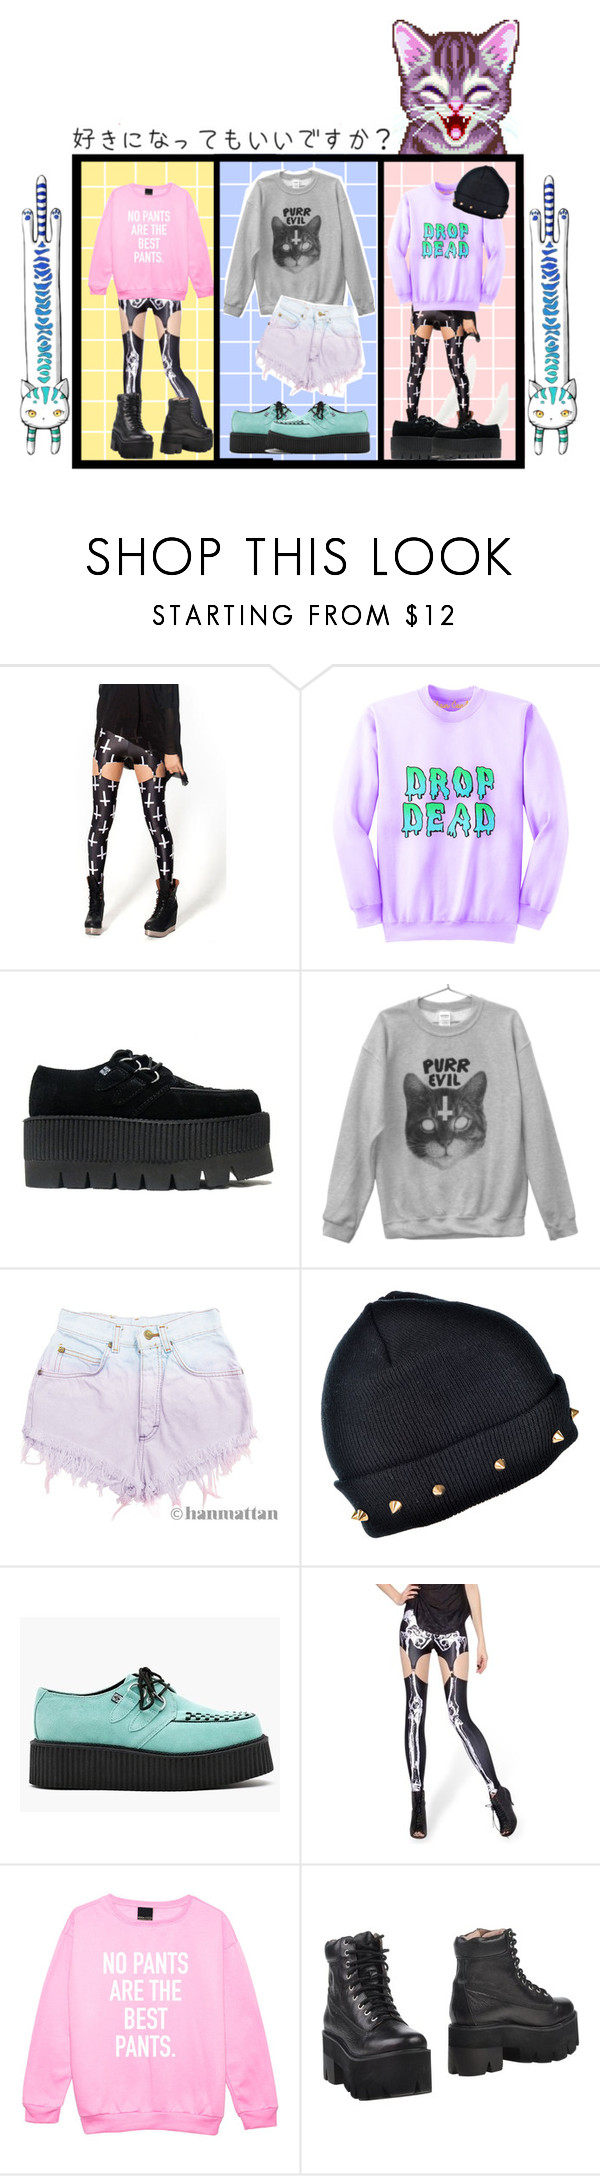 """PASTEL GOTH STYLE❤"" by vocaloid523 ❤ liked on Polyvore featuring As Is, T.U.K., Levi's, Jeffrey Campbell, women's clothing, women's fashion, women, female, woman and misses"